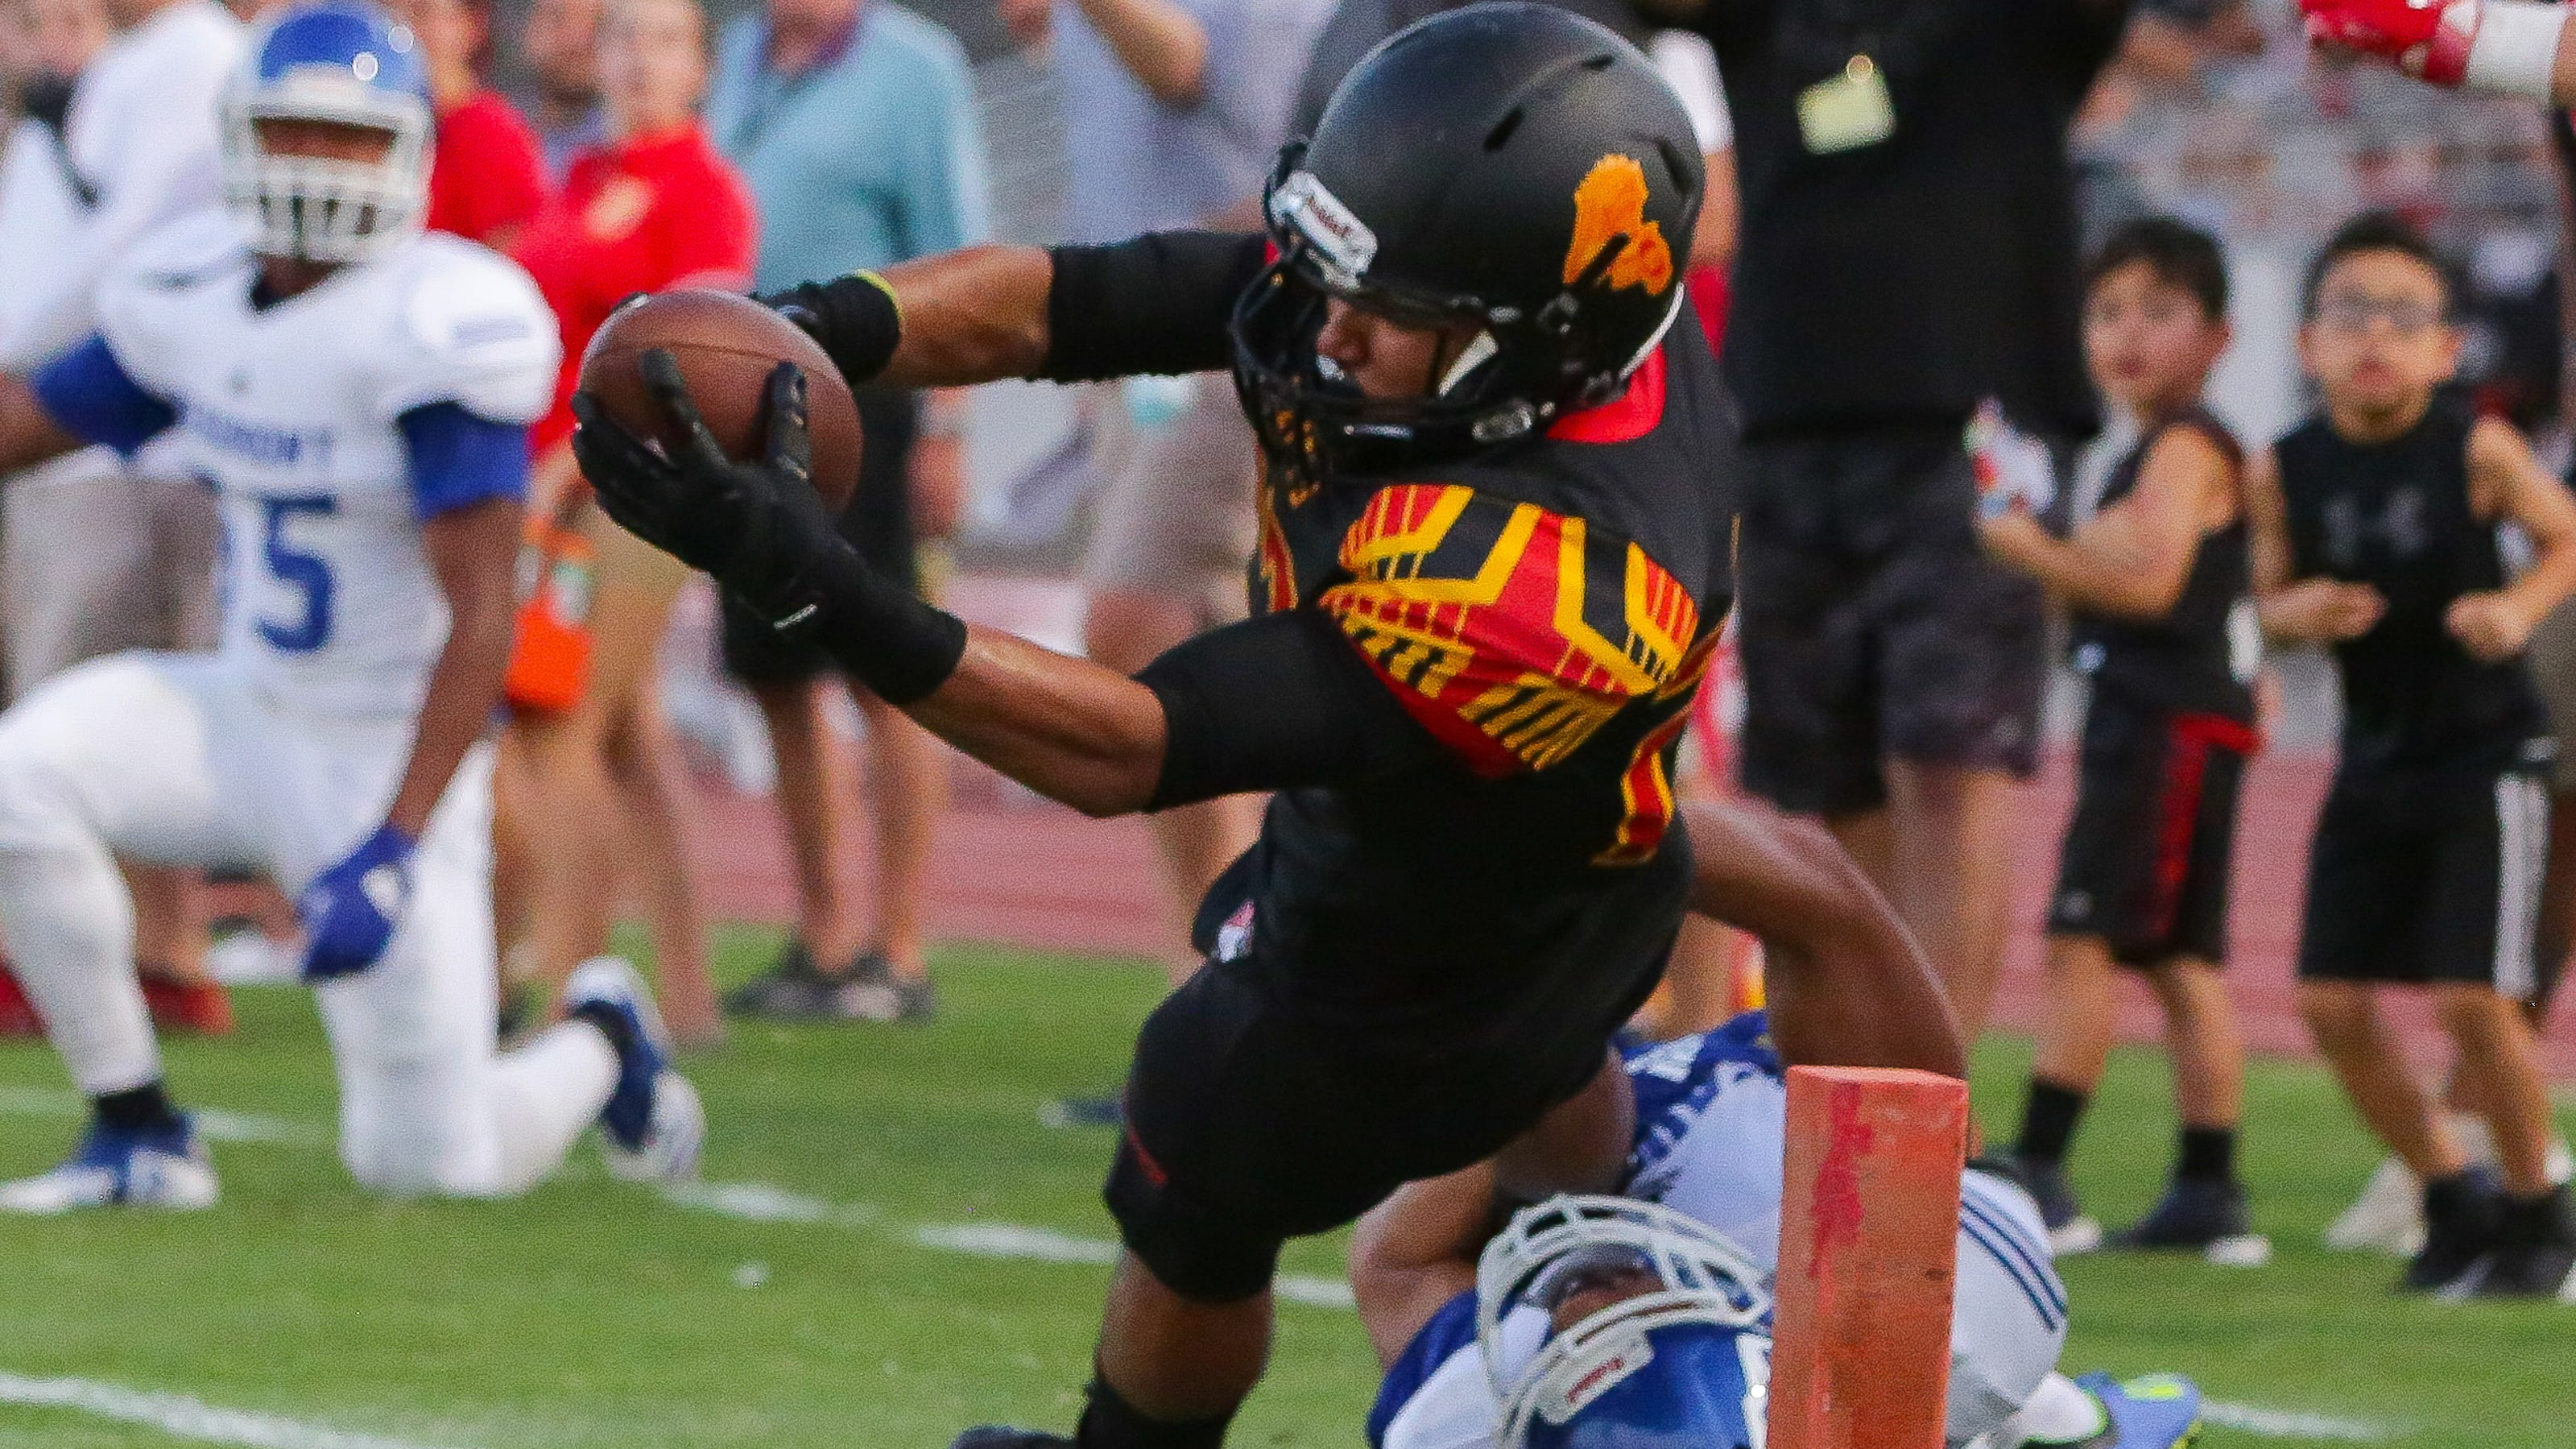 Palm Desert scores game-winning touchdown on unlikely catch